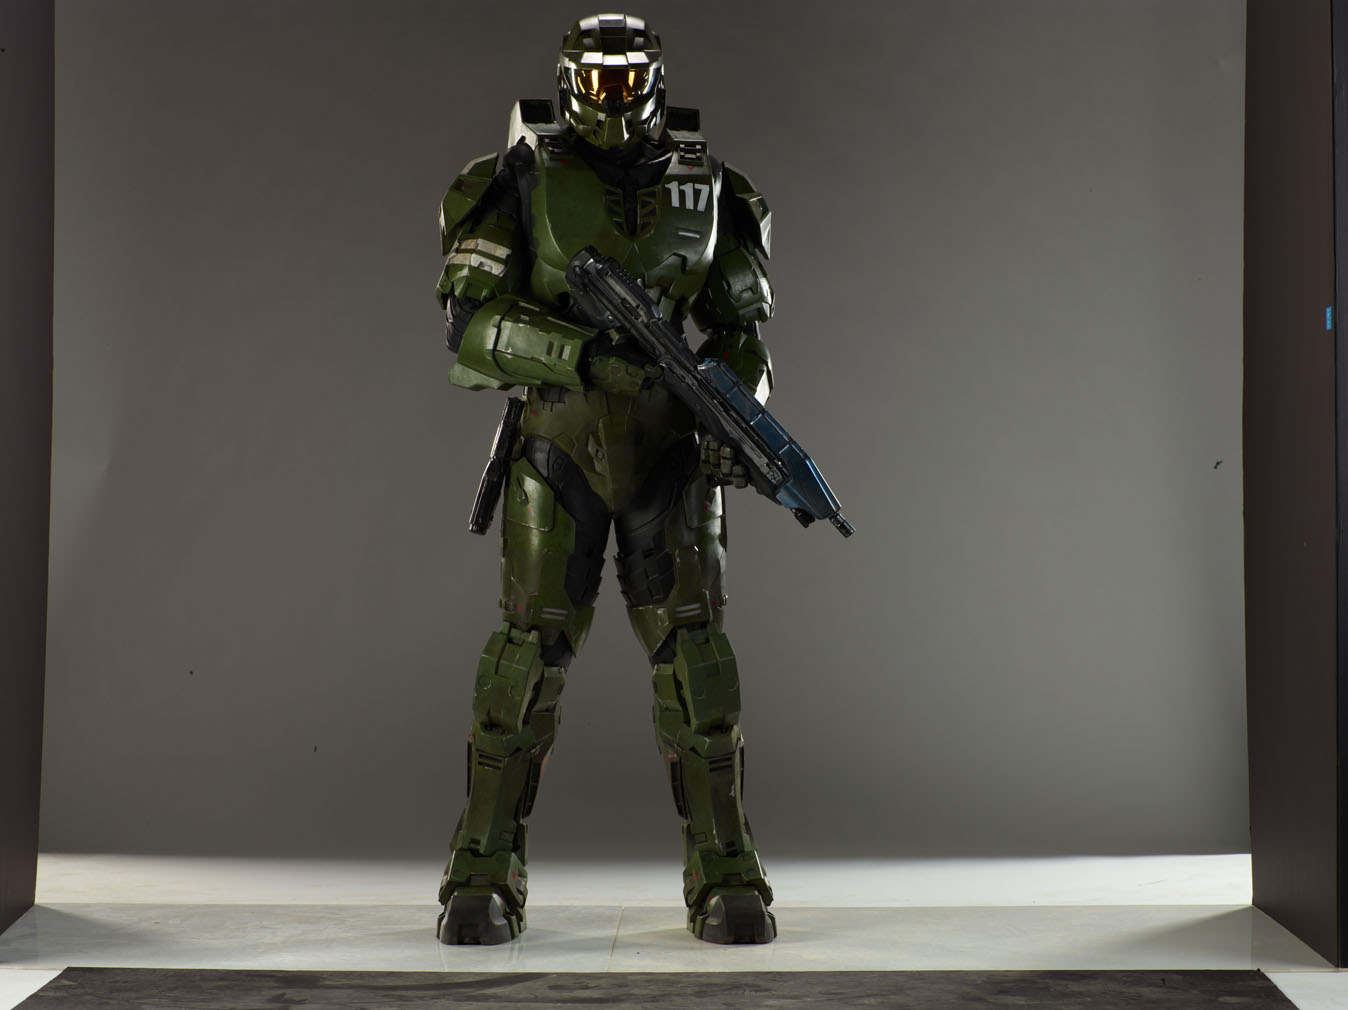 Noob Making Mark Iv Forward Unto Dawn Master Chief Armor Halo Costume And Prop Maker Community 405th